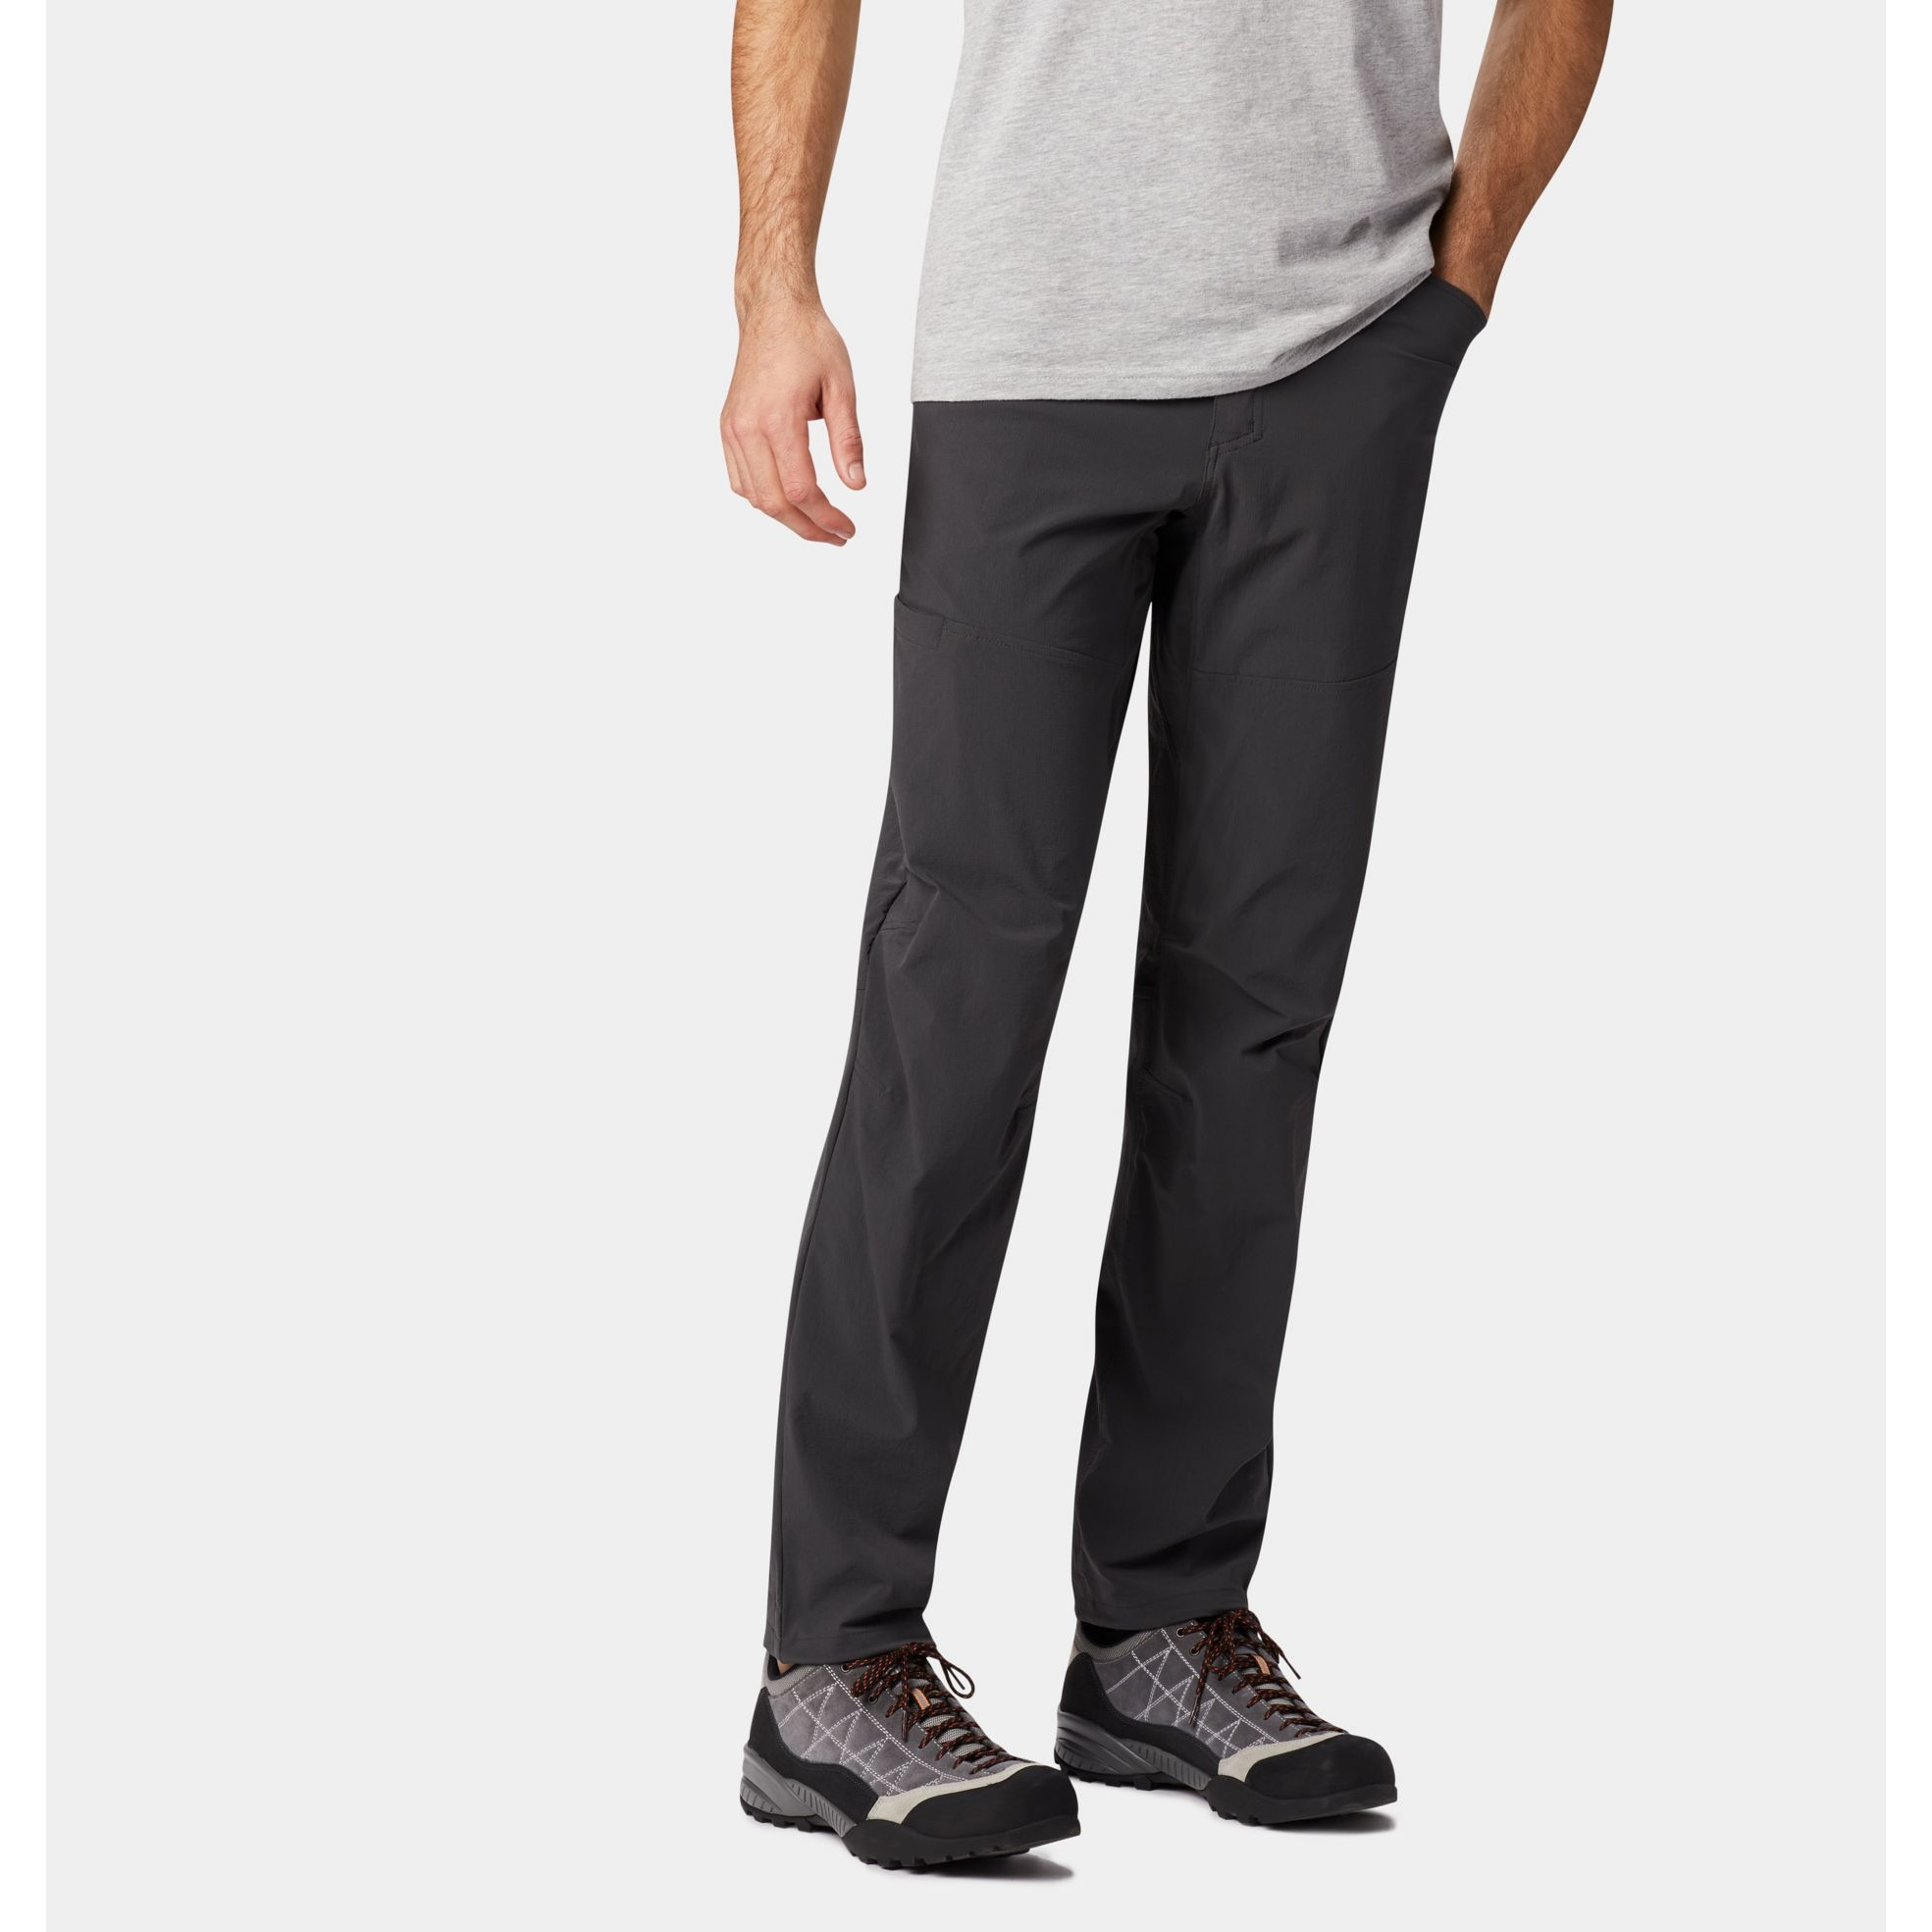 Logan Canyon Pant - Men's